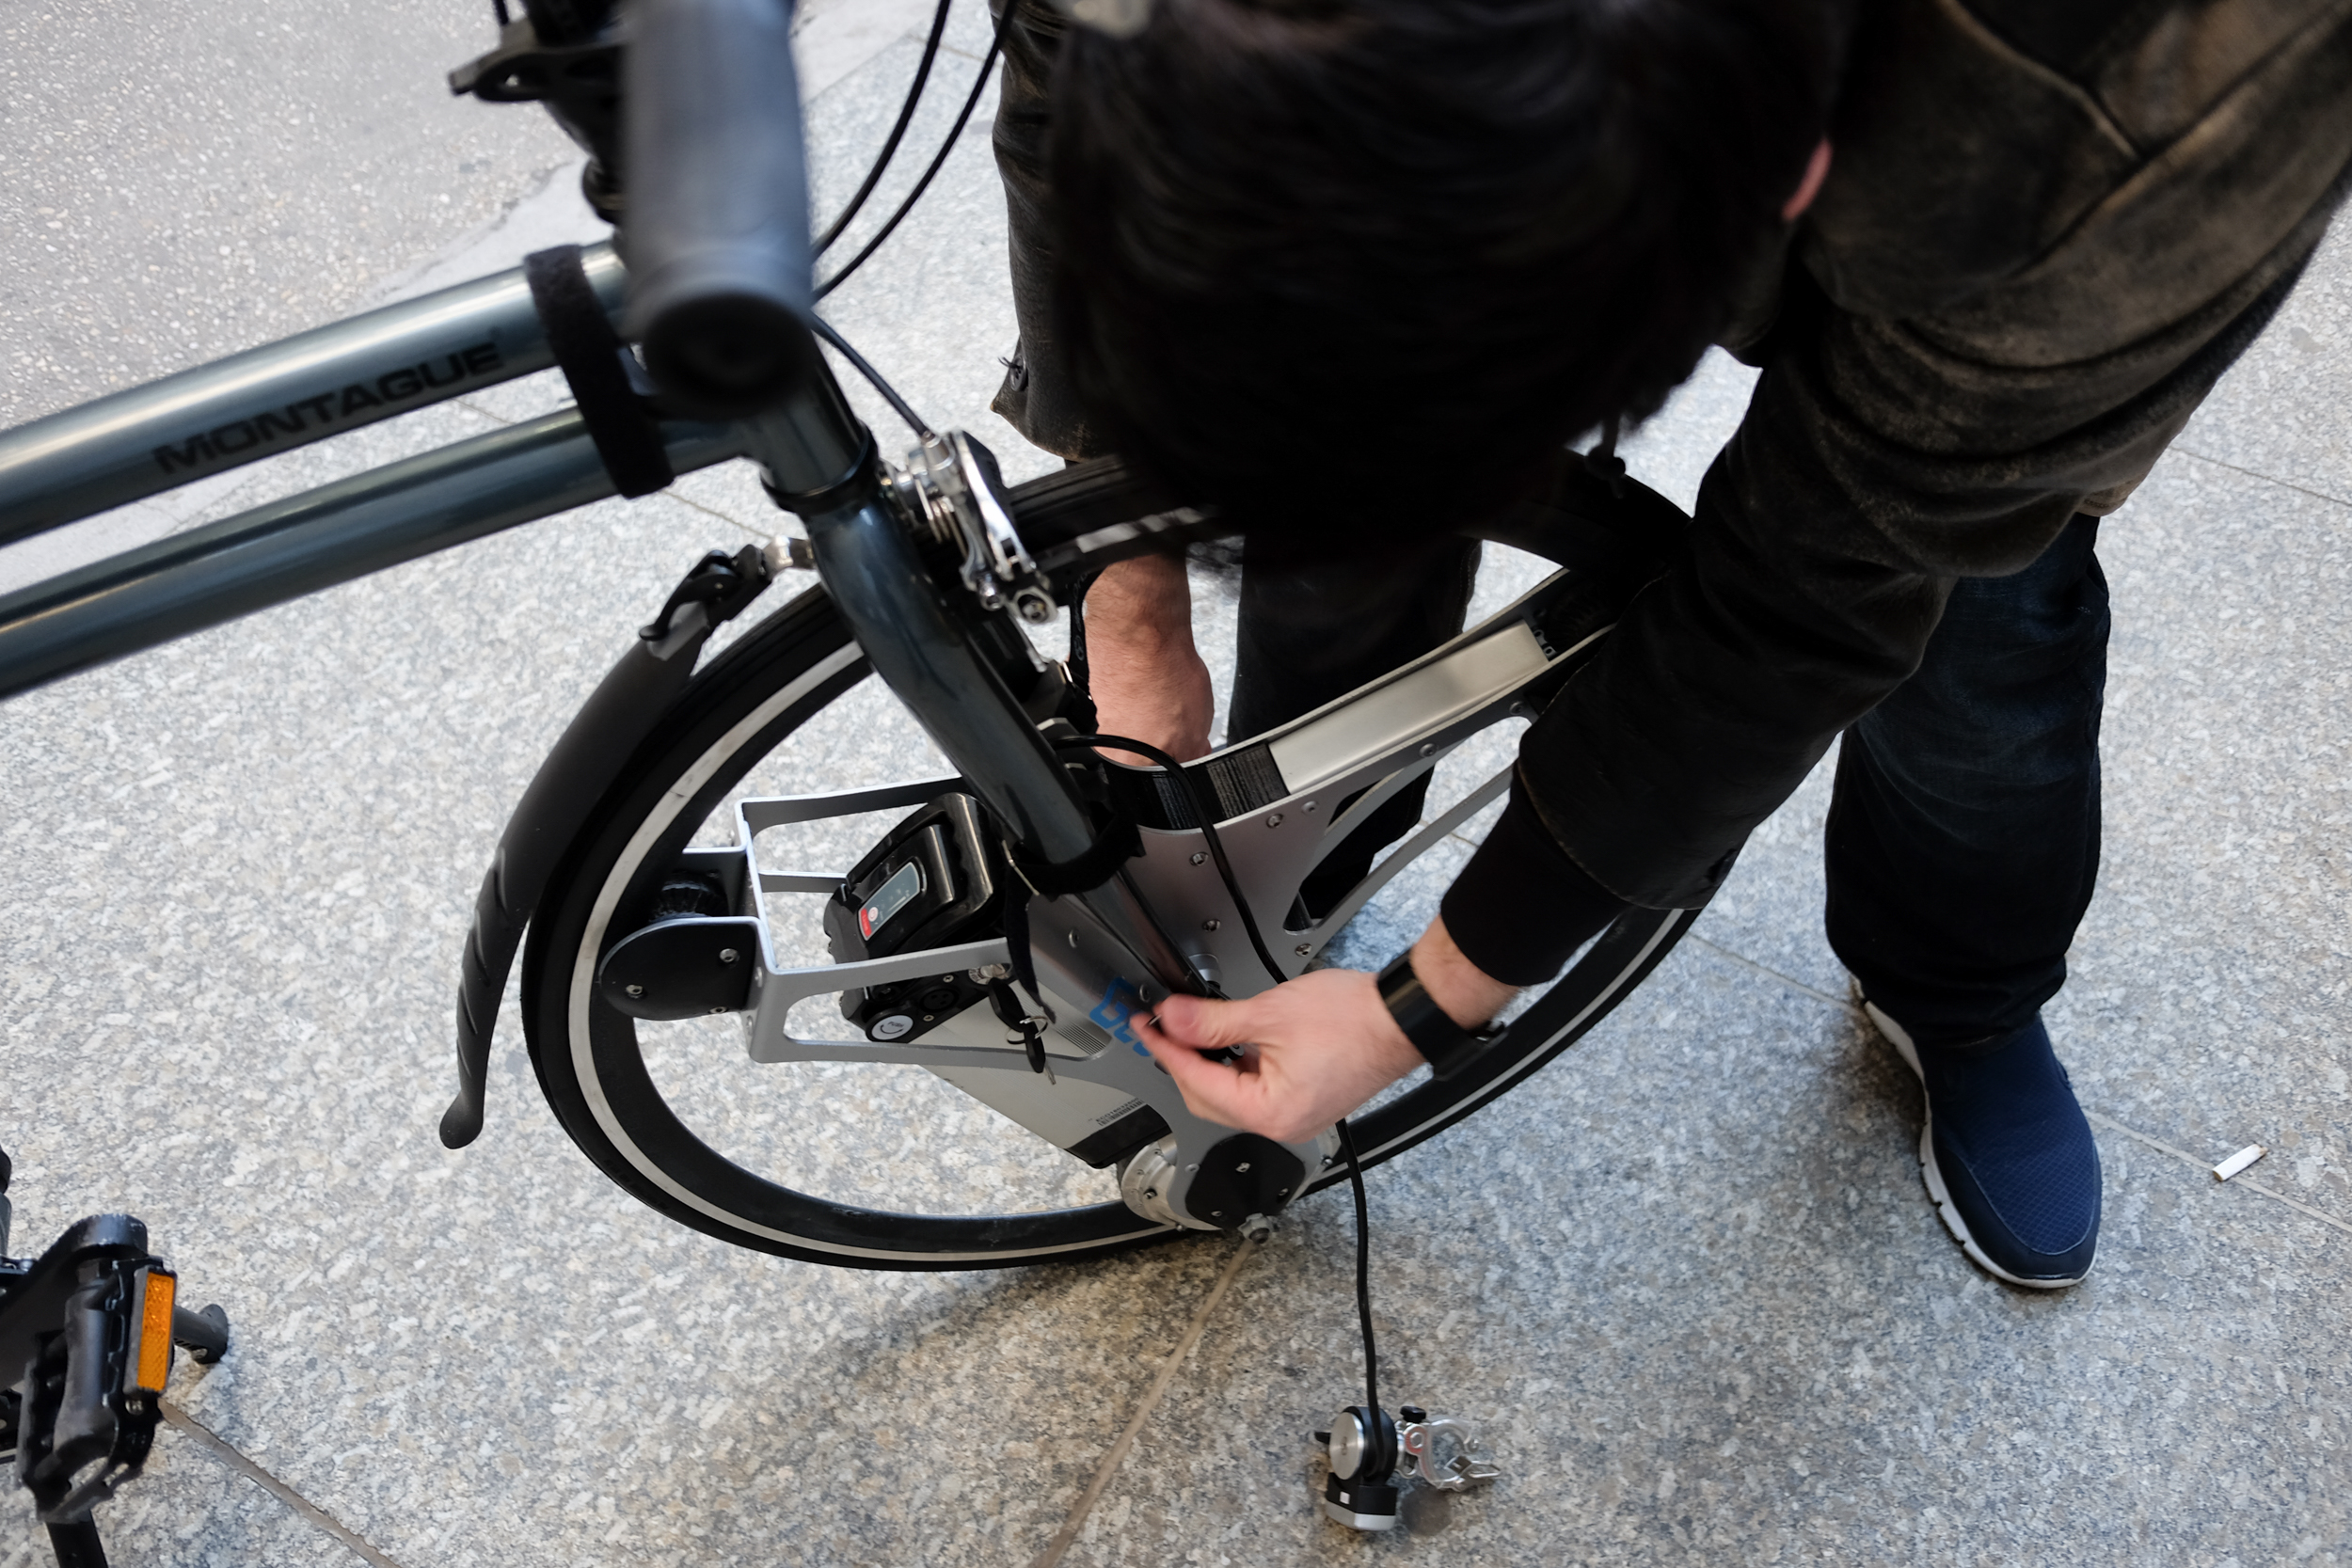 This motorized wheel adds electric power to your bike - The